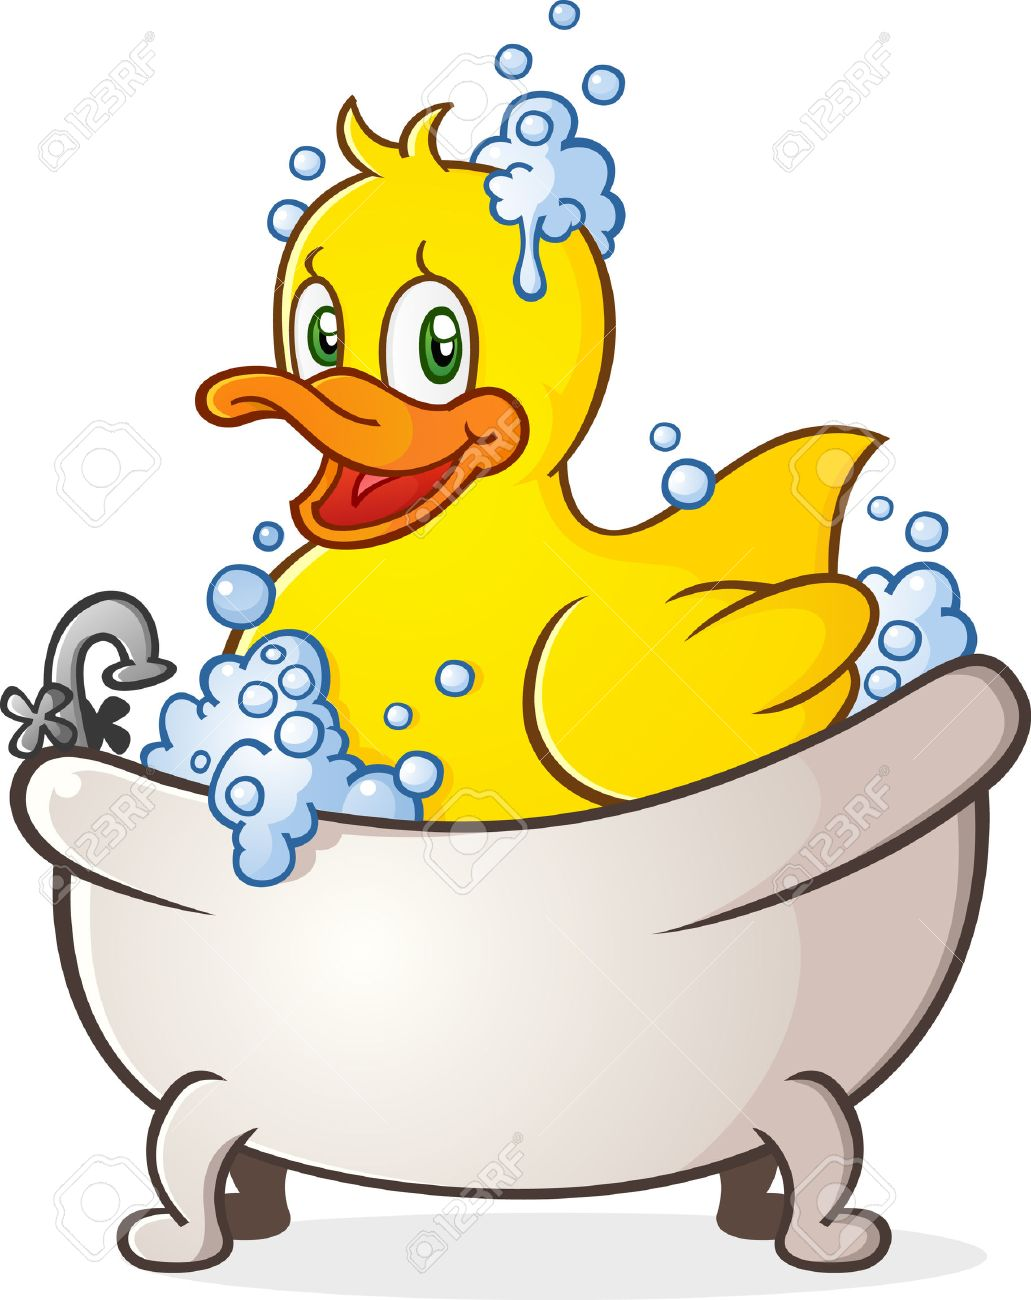 Rubber Duck Bubble Bath Cartoon Character In The Tub Royalty Free ...